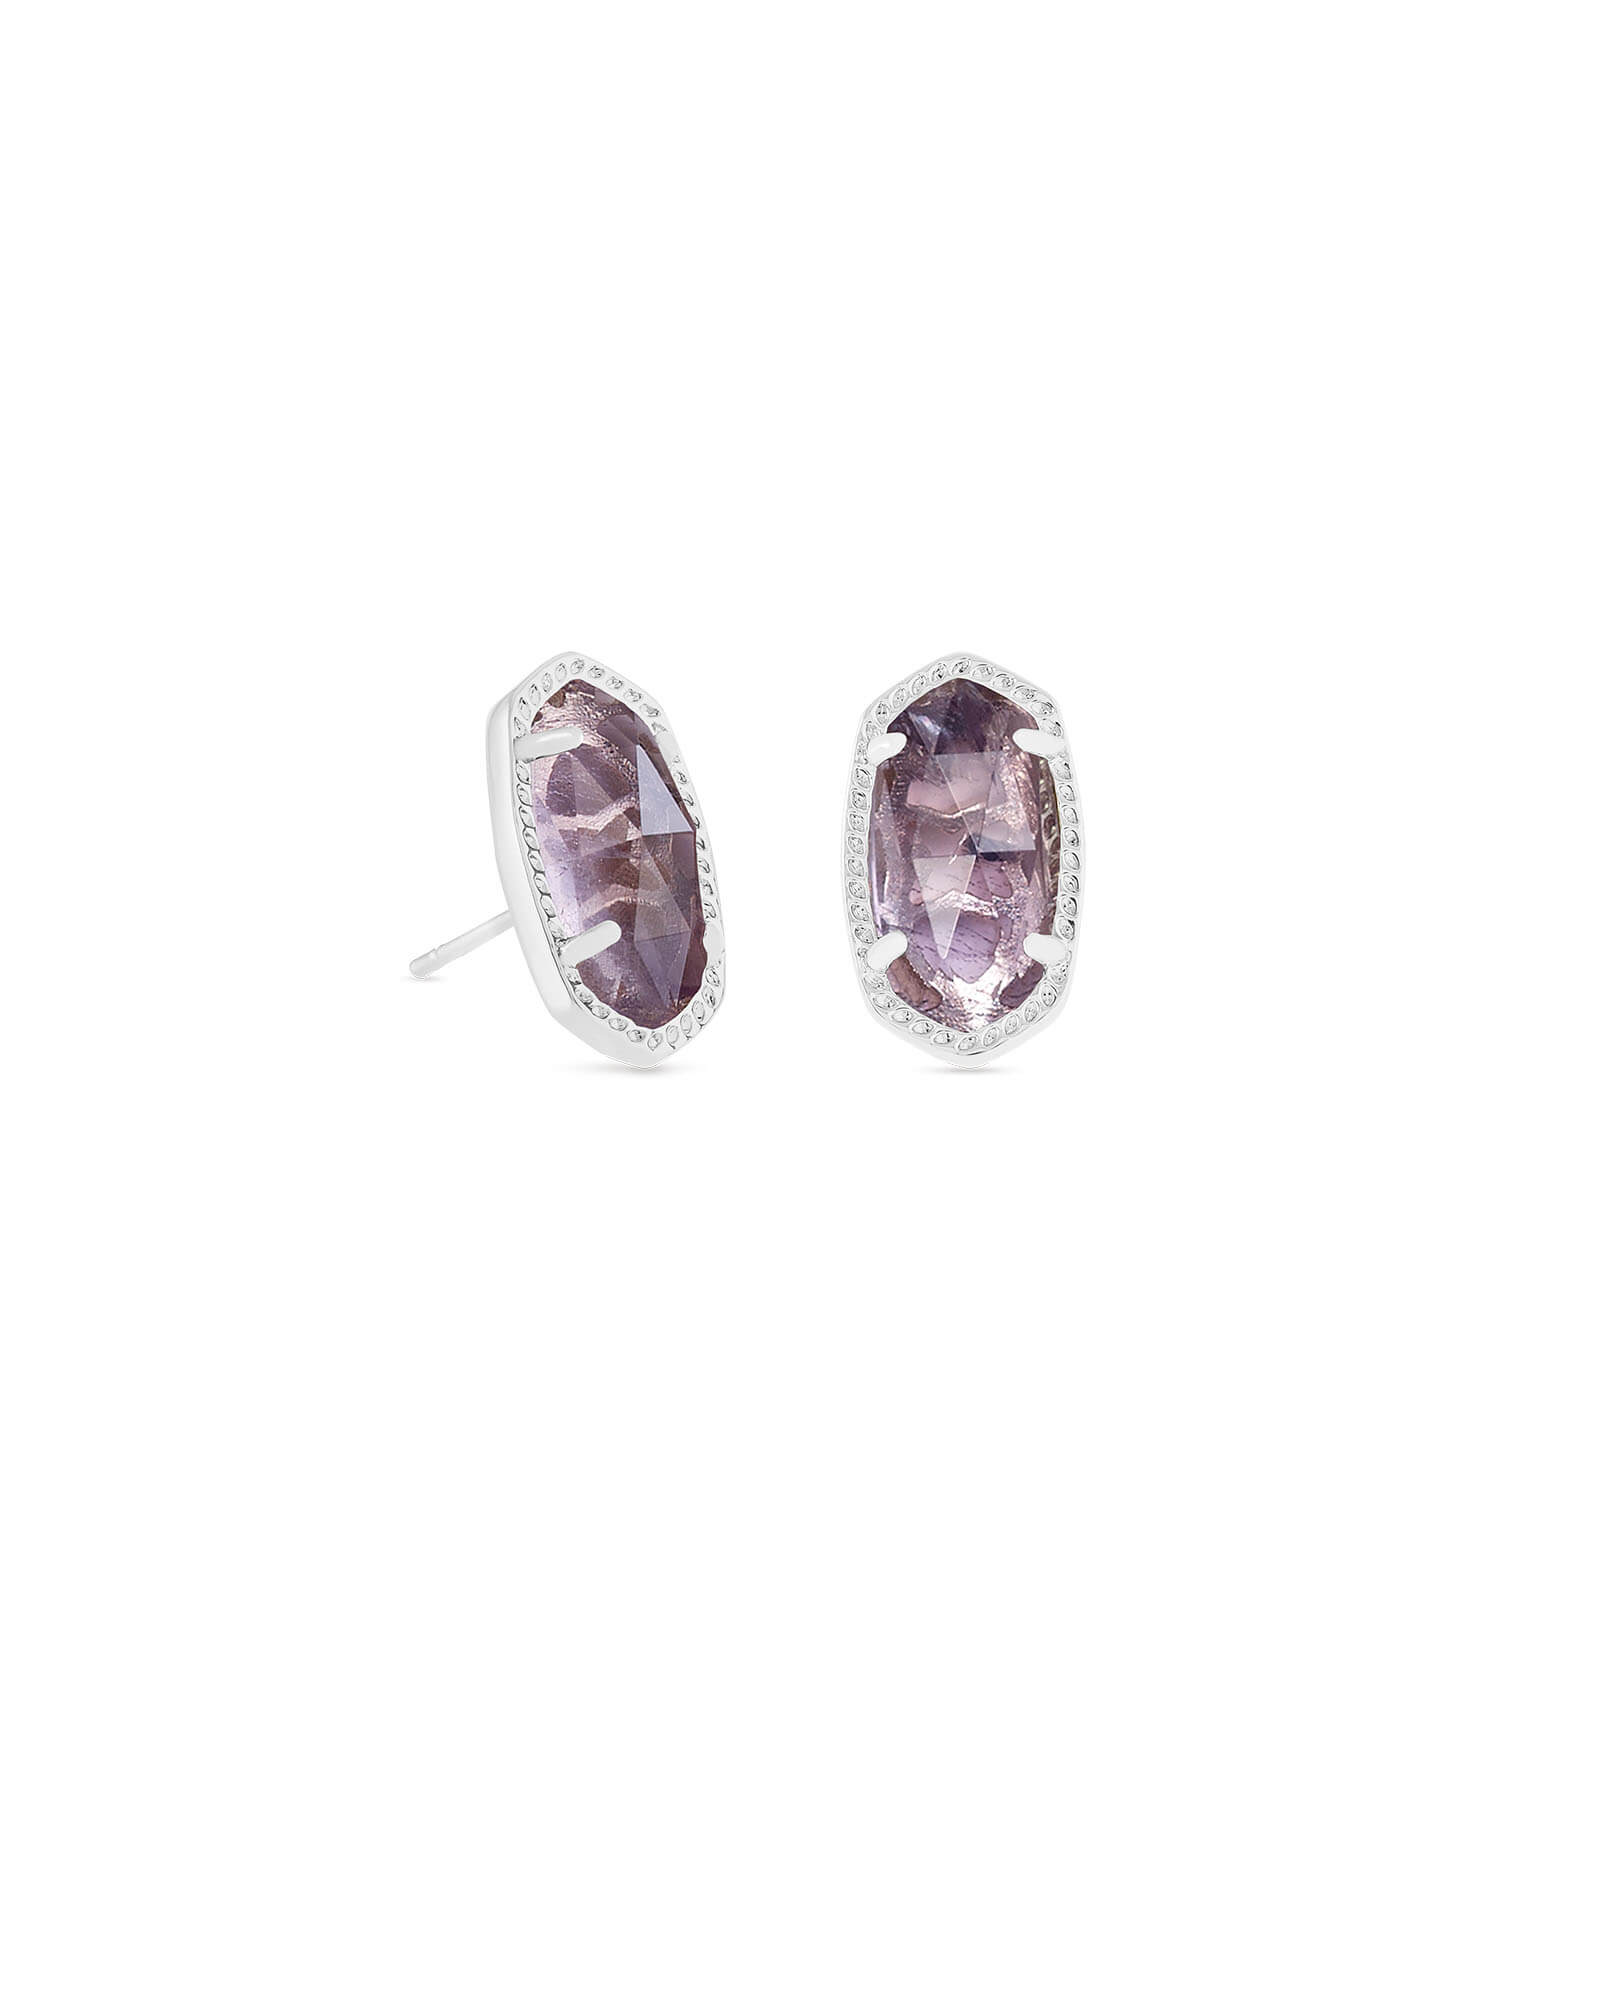 Ellie Silver Stud Earrings in Amethyst